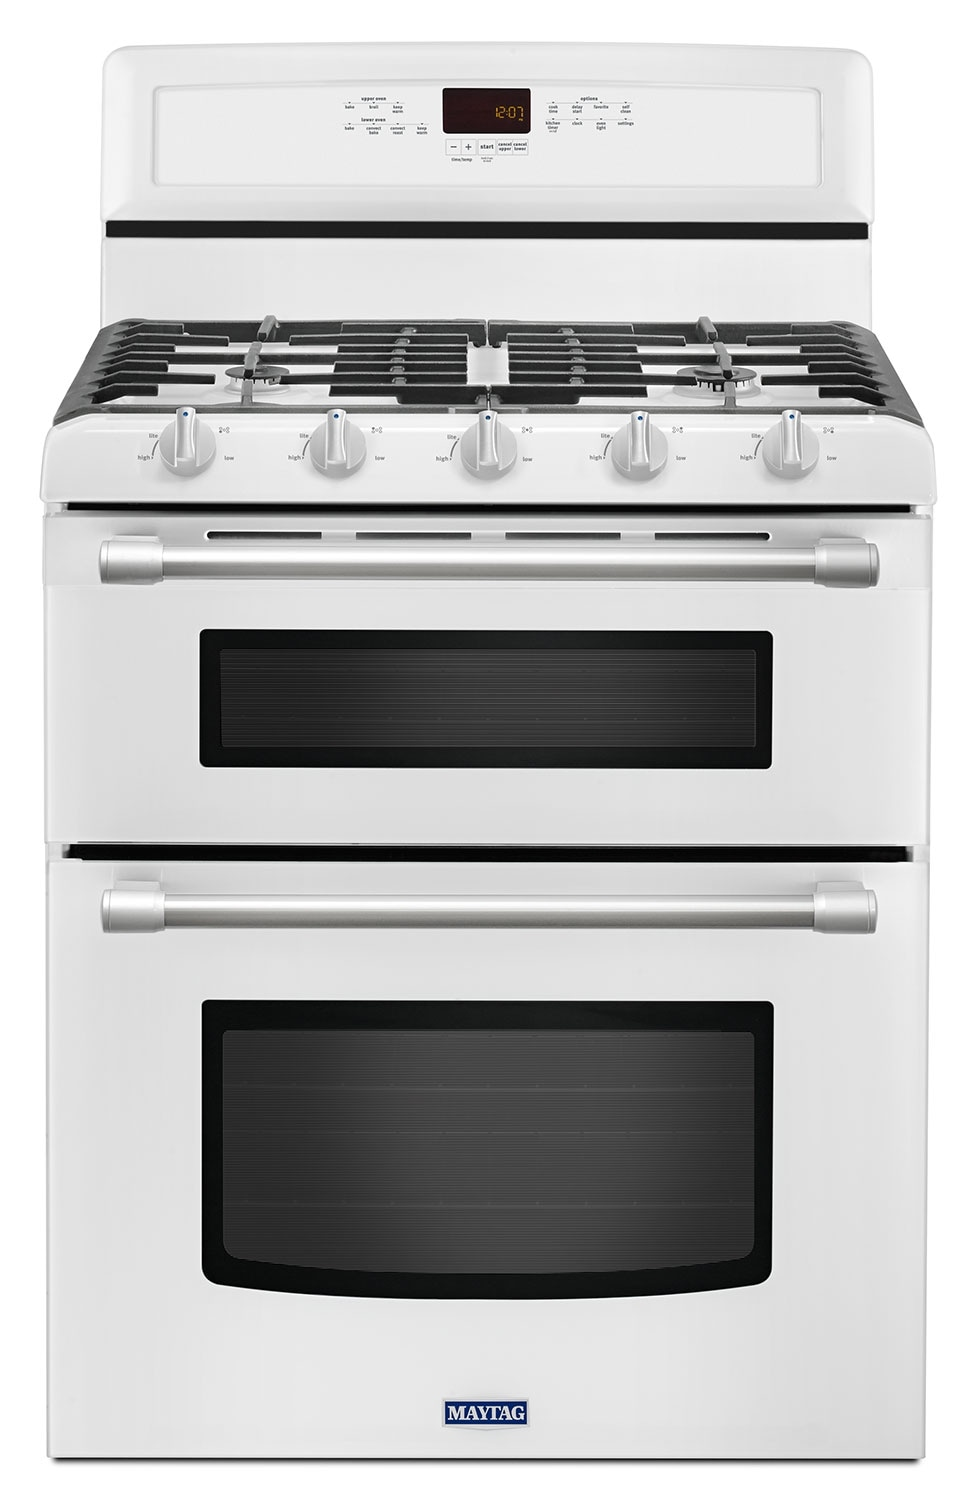 [Maytag White Freestanding Double Gas Range (6.0 Cu. Ft.) - MGT8720DH]